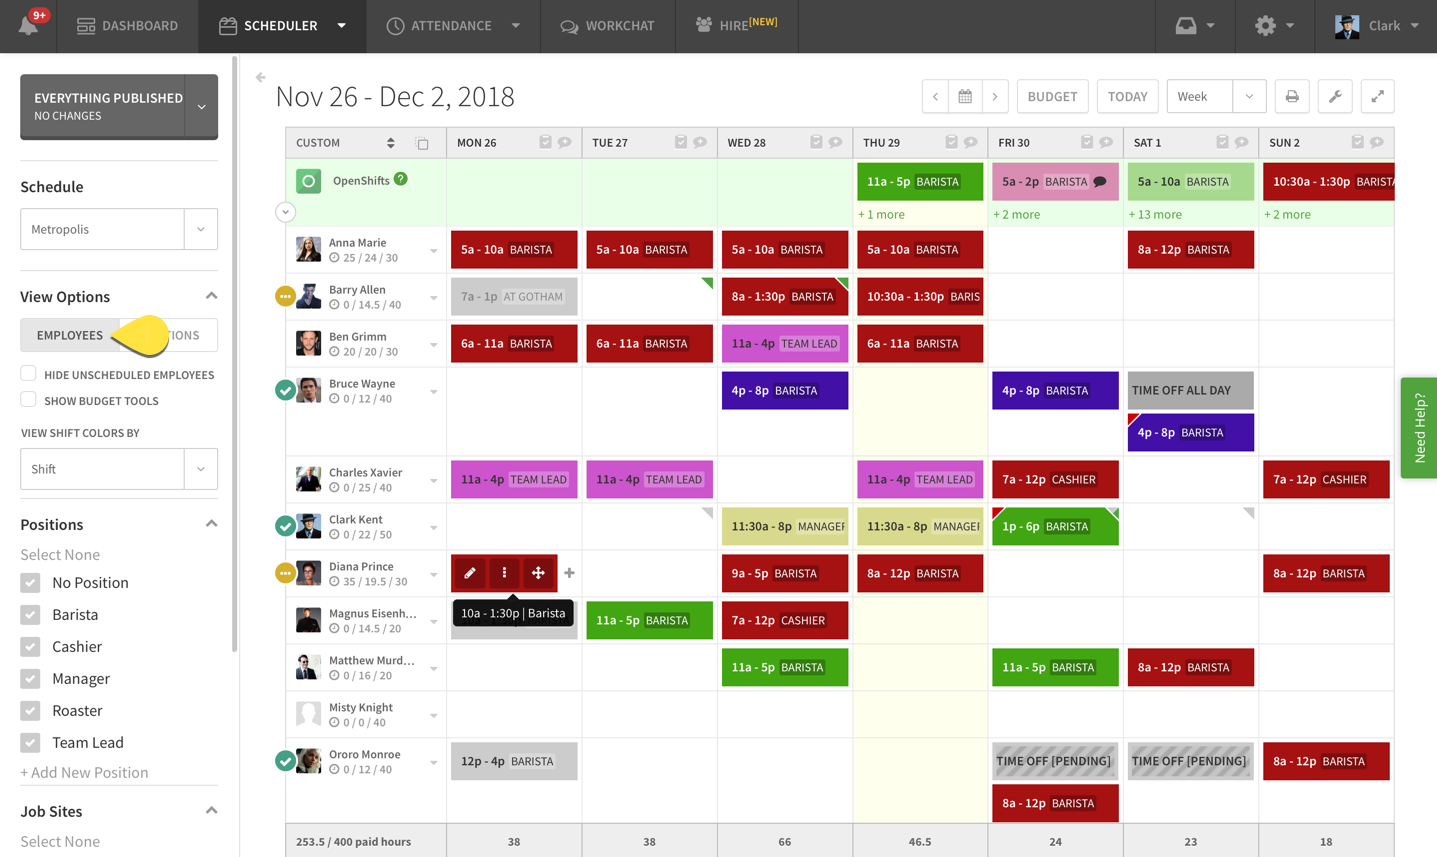 Employee View Option on Scheduler